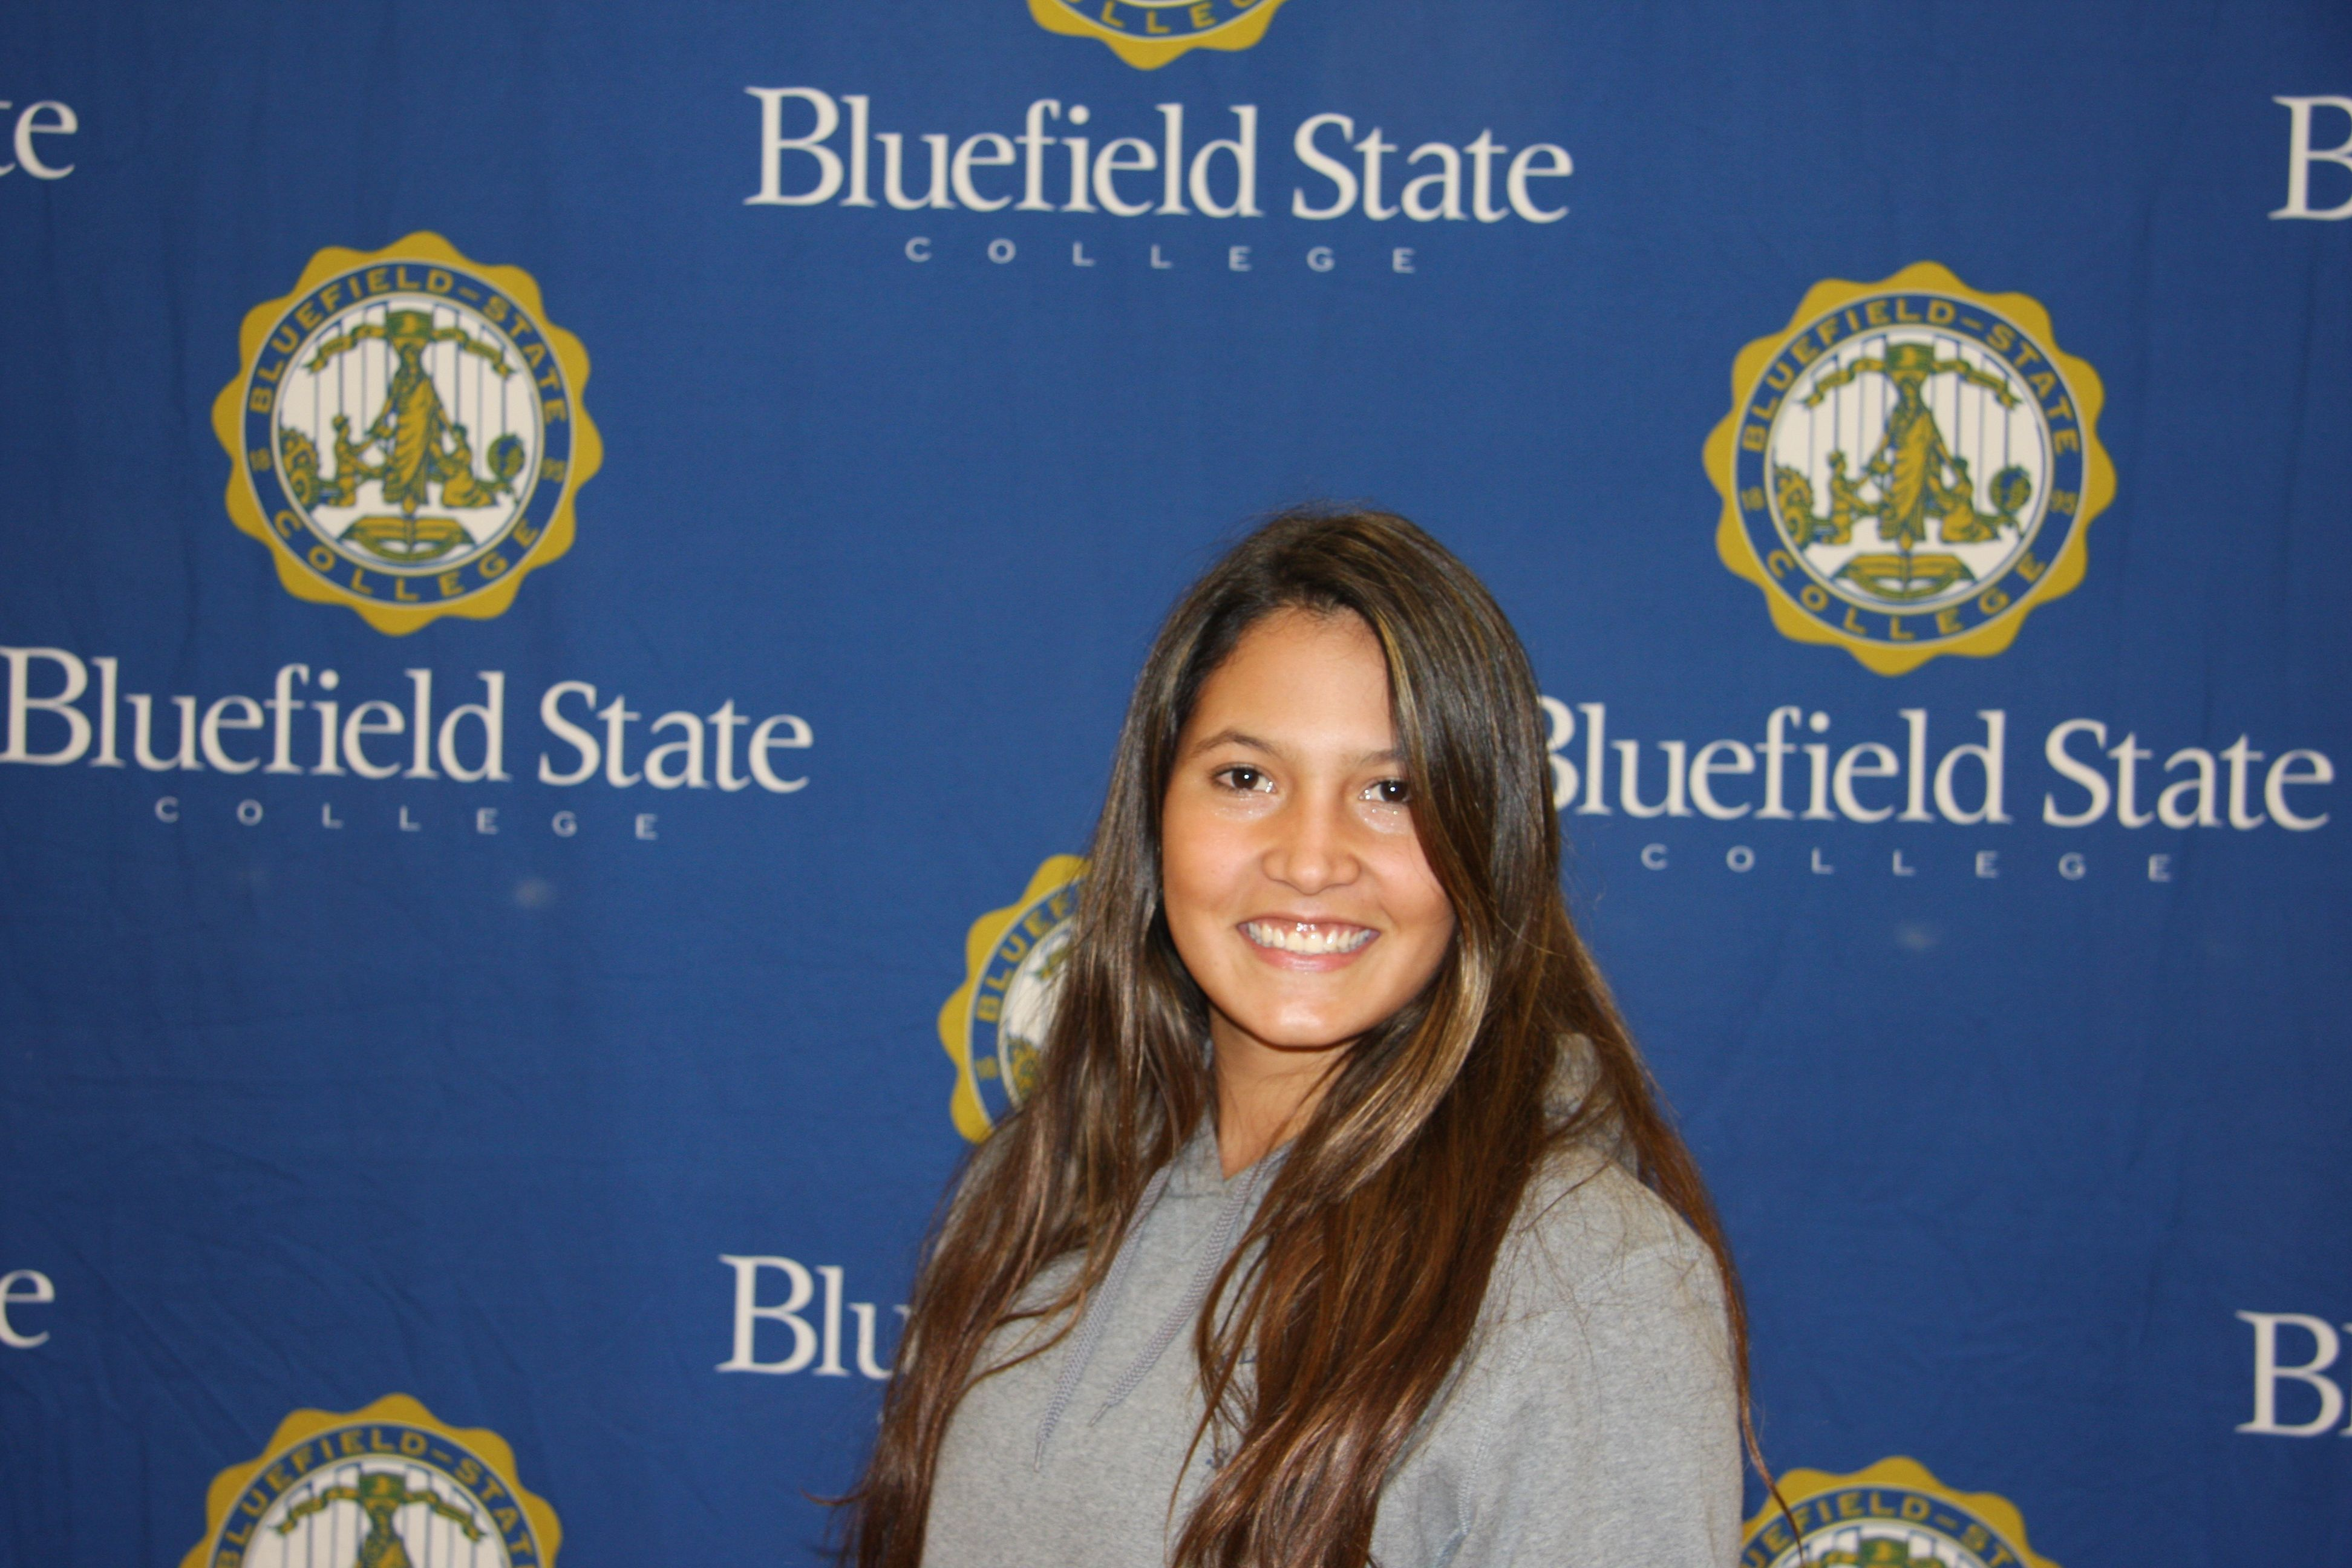 Isabella cubillos bluefield state cali colombia